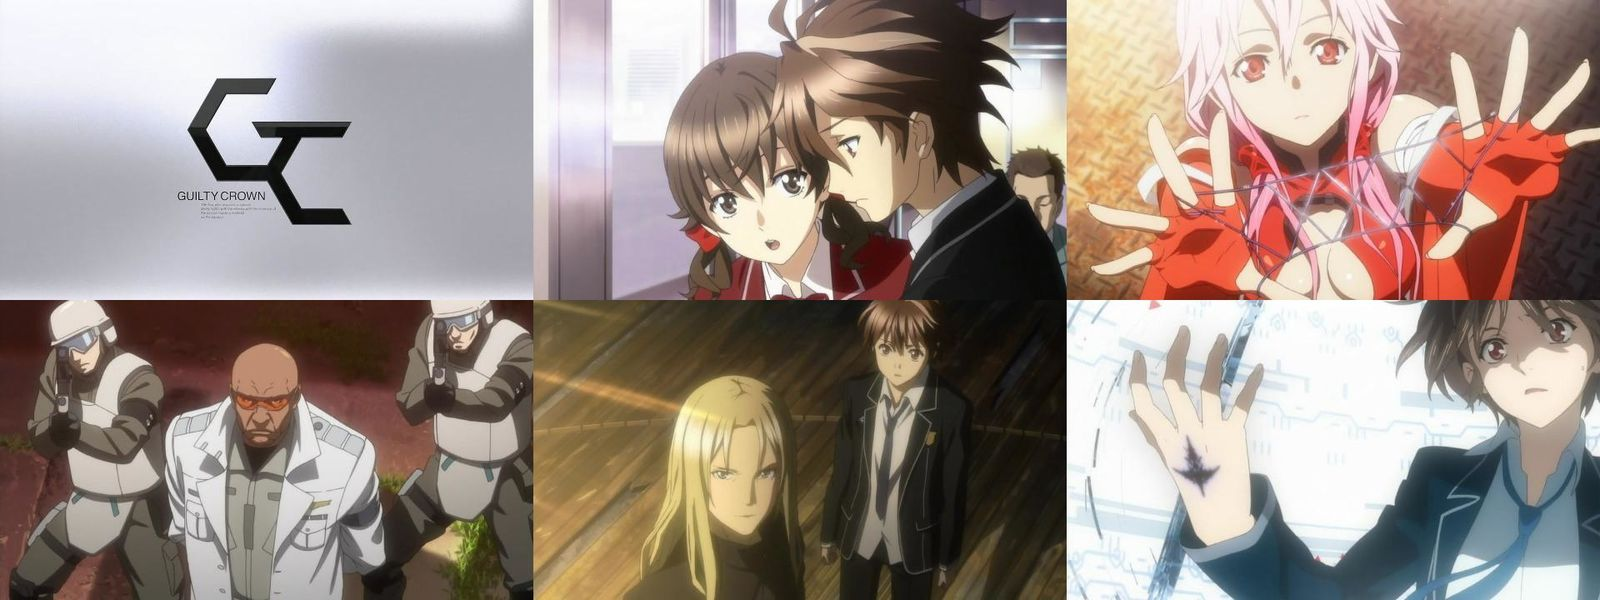 Guilty-Crown-sc.jpg